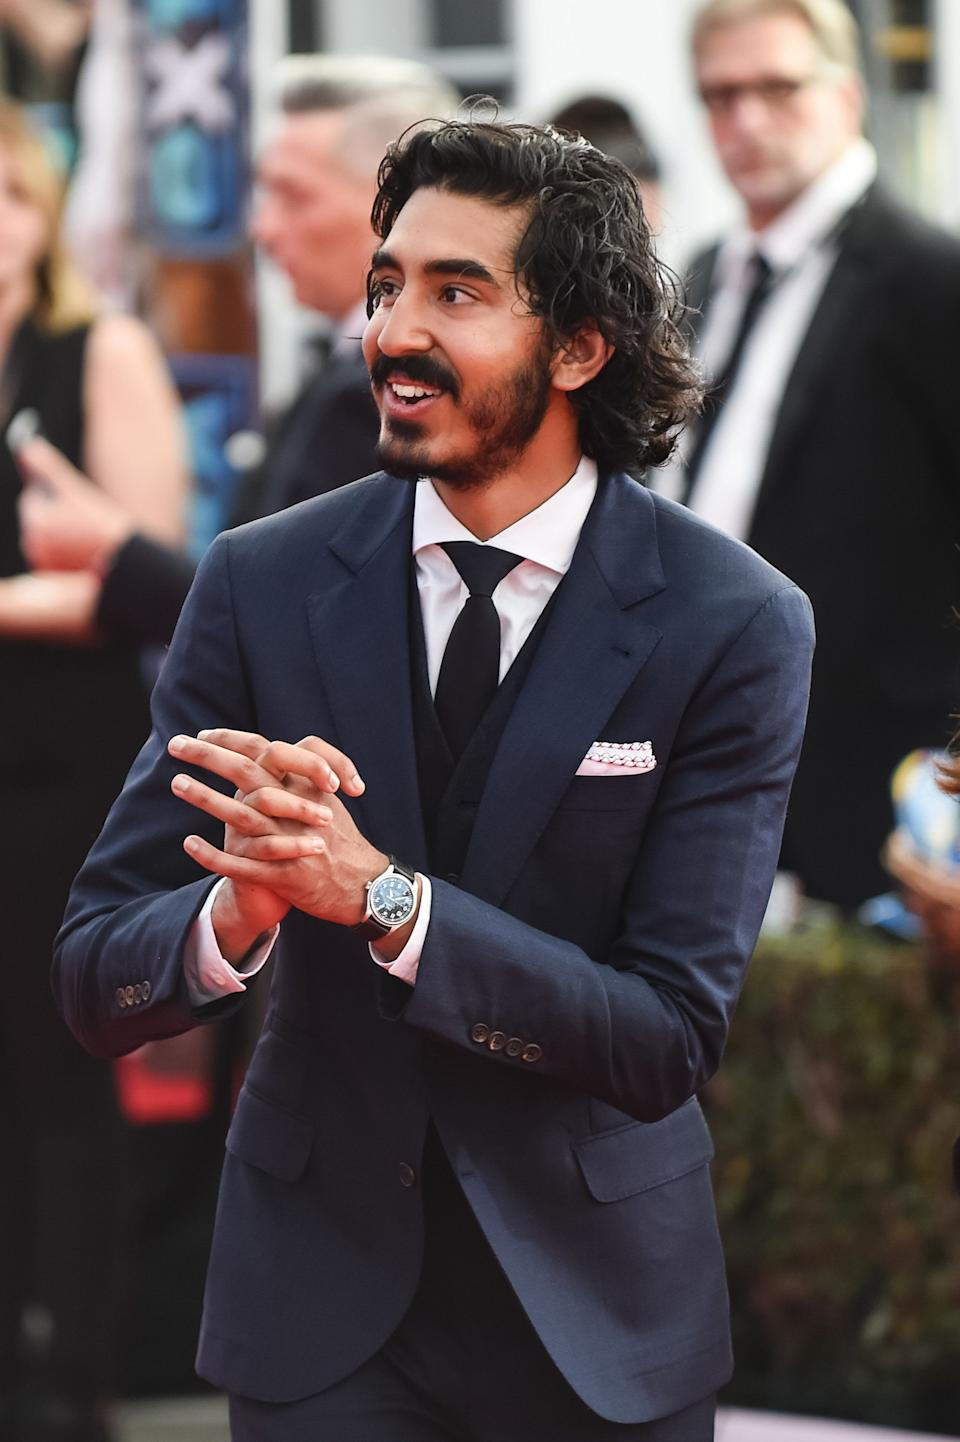 """Dev Patel stopped on the red carpet to speak out during the 23rd annual Screen Actors Guild Awards.<br /><br />""""I've just flown in from India andto fly into what was a nightmare, to realize that this is actually happening right now in the world, in a country where I live, it's heartbreaking. The first thought that came in my head was just thousands of children and mothers and young fathers that have turned up to these shores with hope, and they're being swatted away. It's just so divisive and negative and wrong. It's scary, it's really scary."""""""